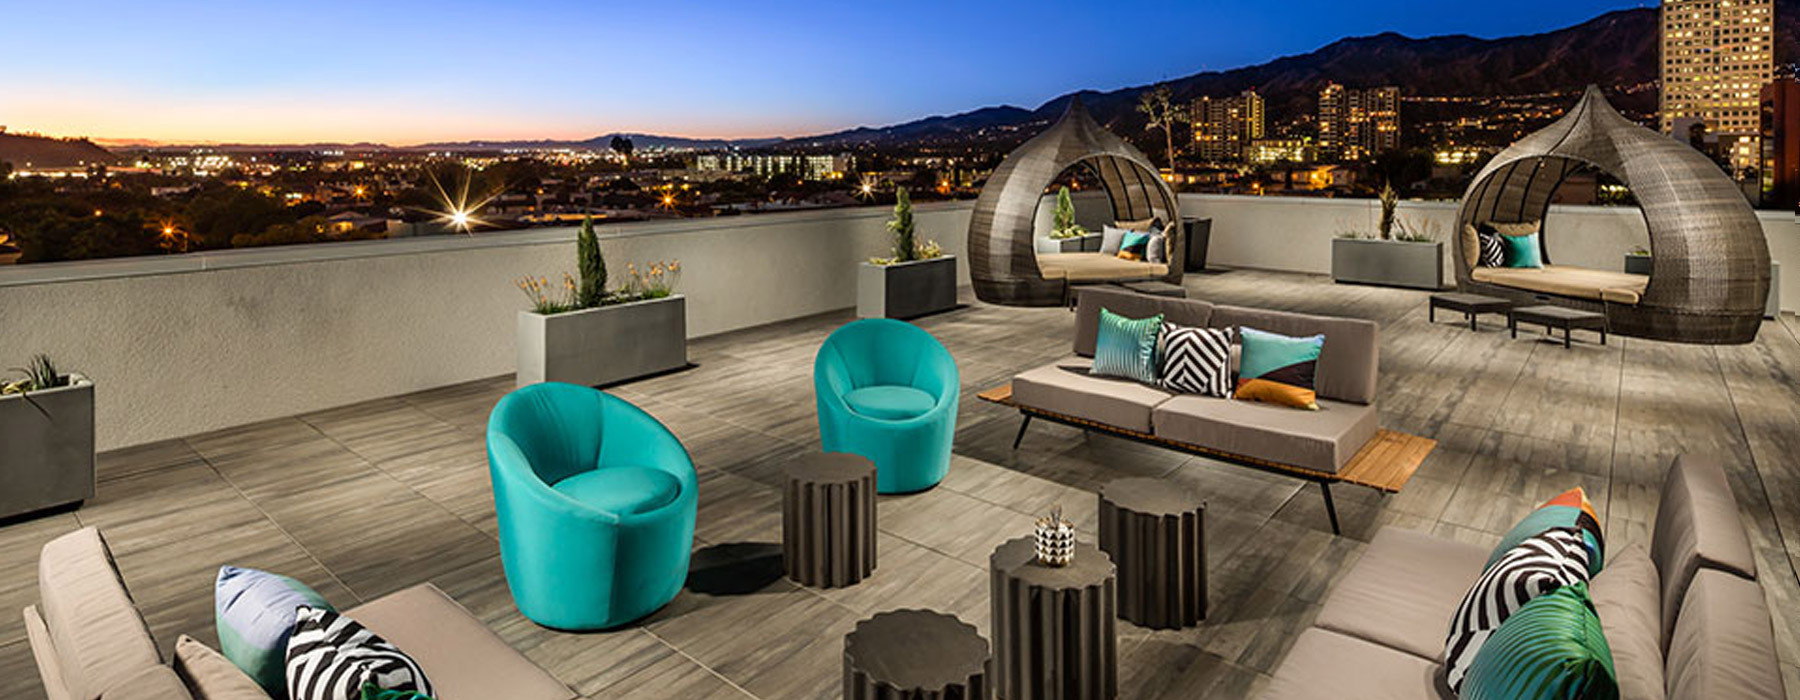 Explore Like a Traveler: Secluded Outdoor Lounge and Sky Decks